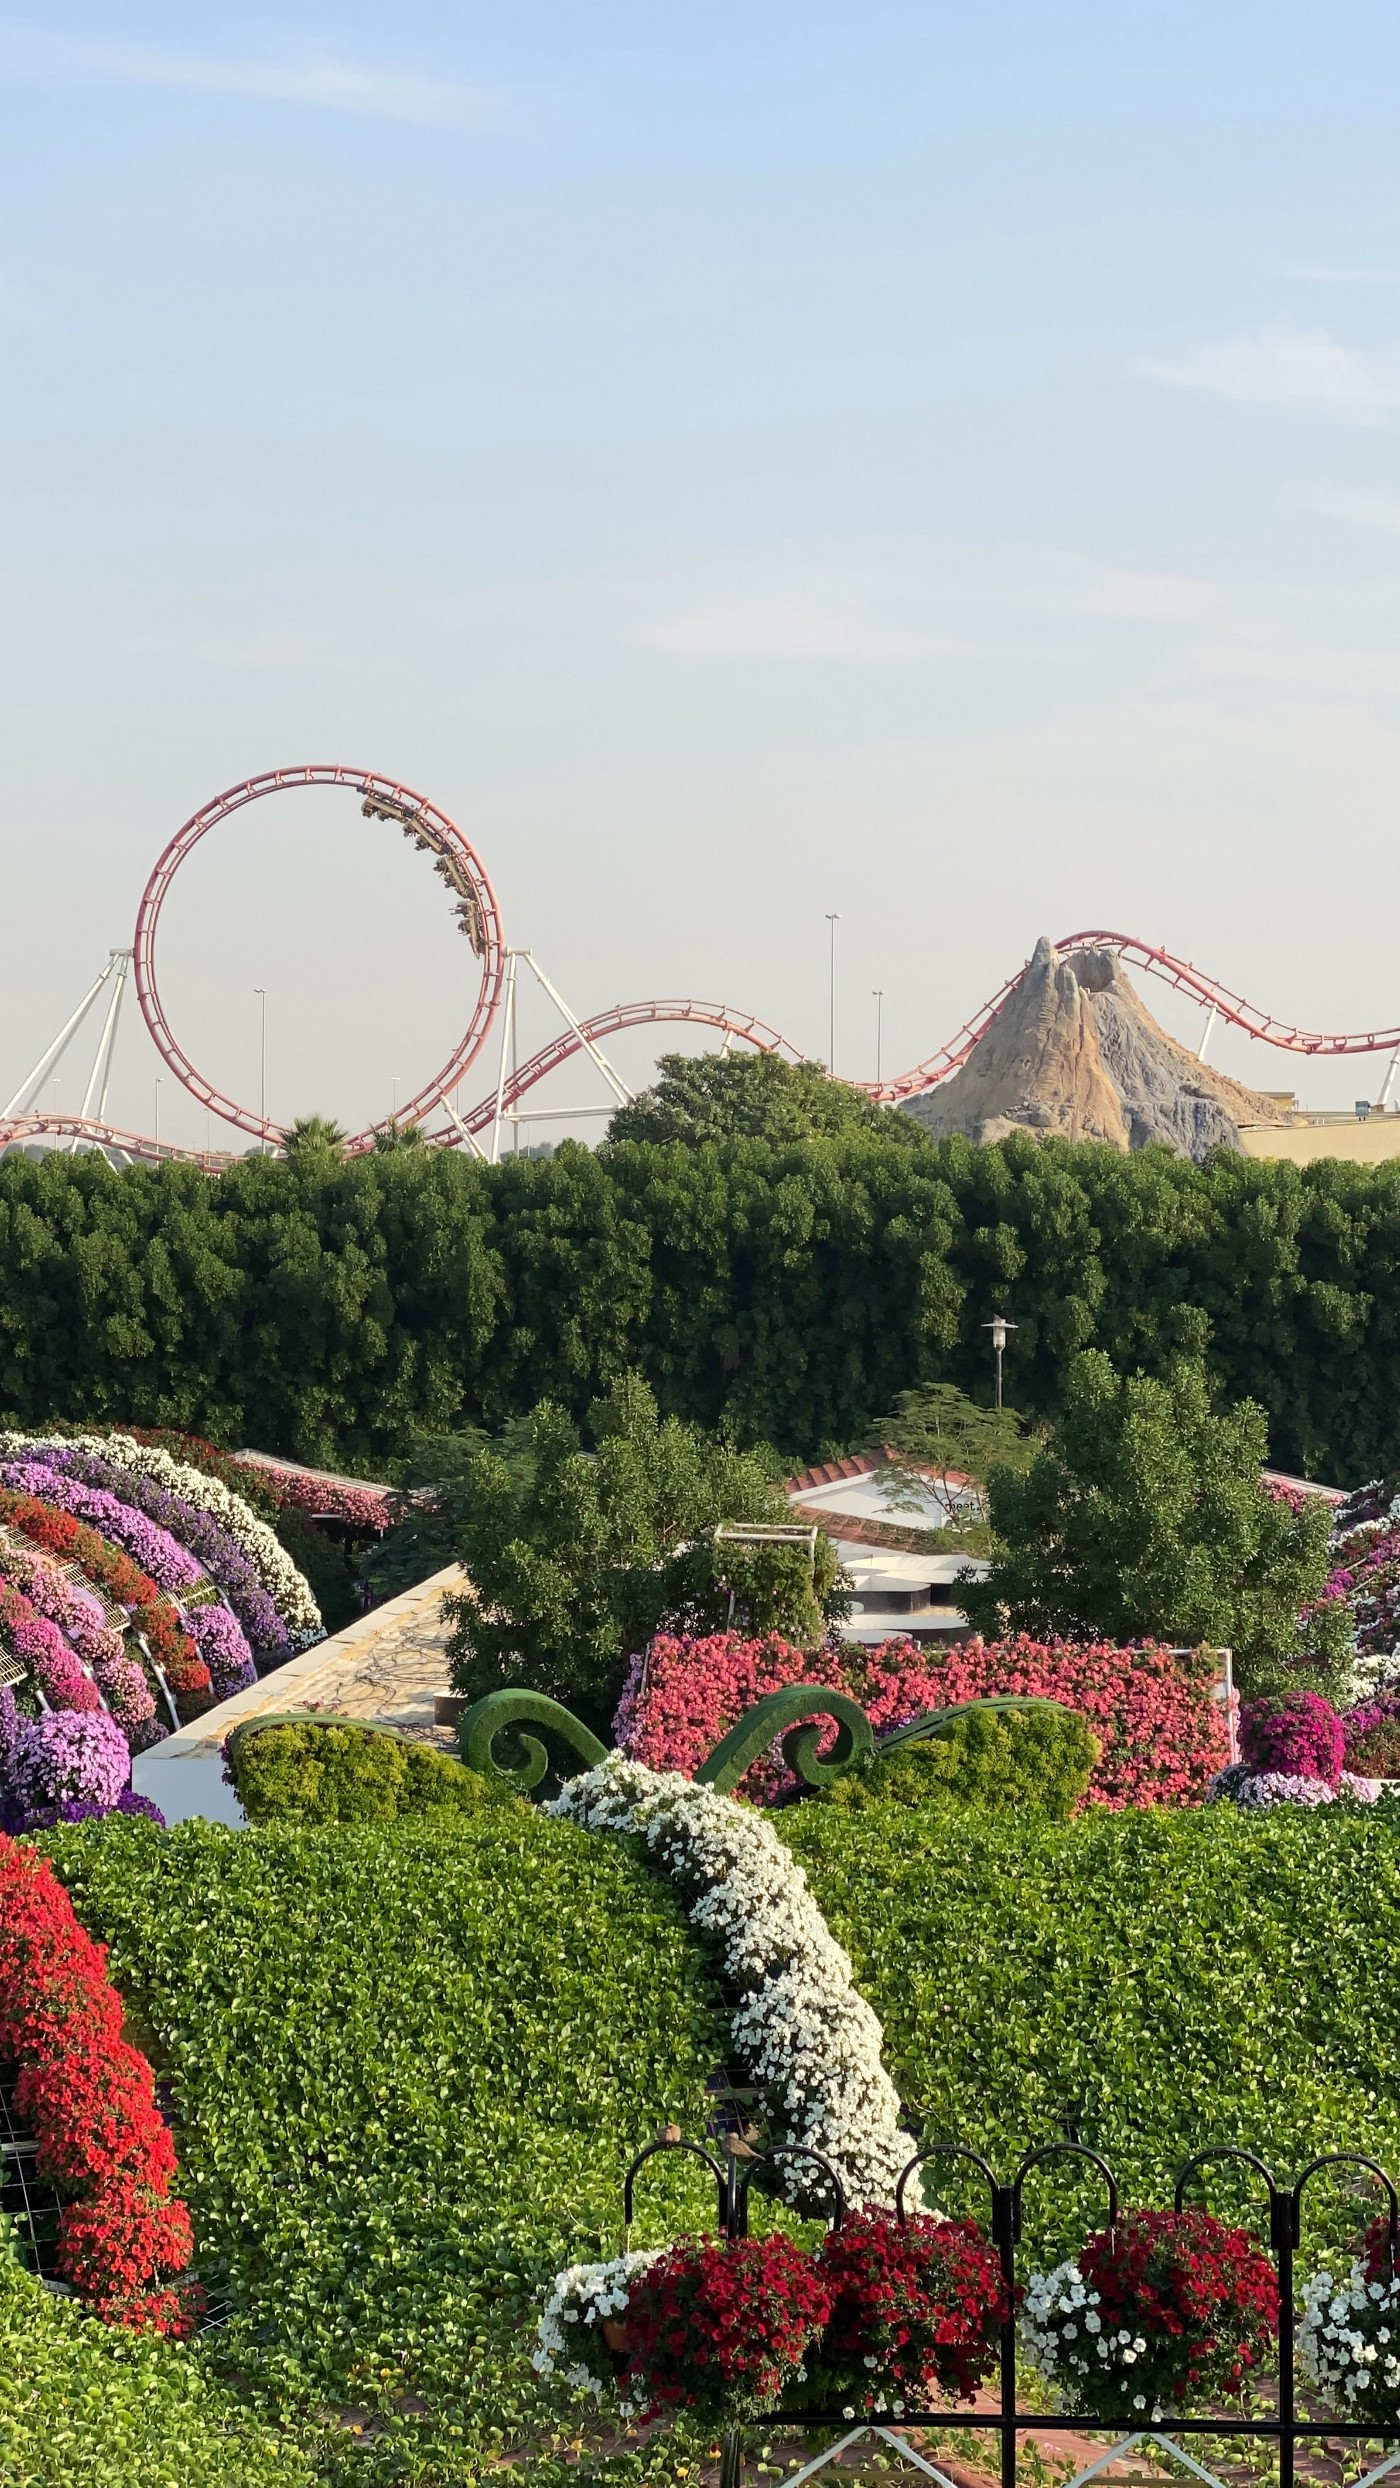 A roller coaster is the backdrop of an amusement park.